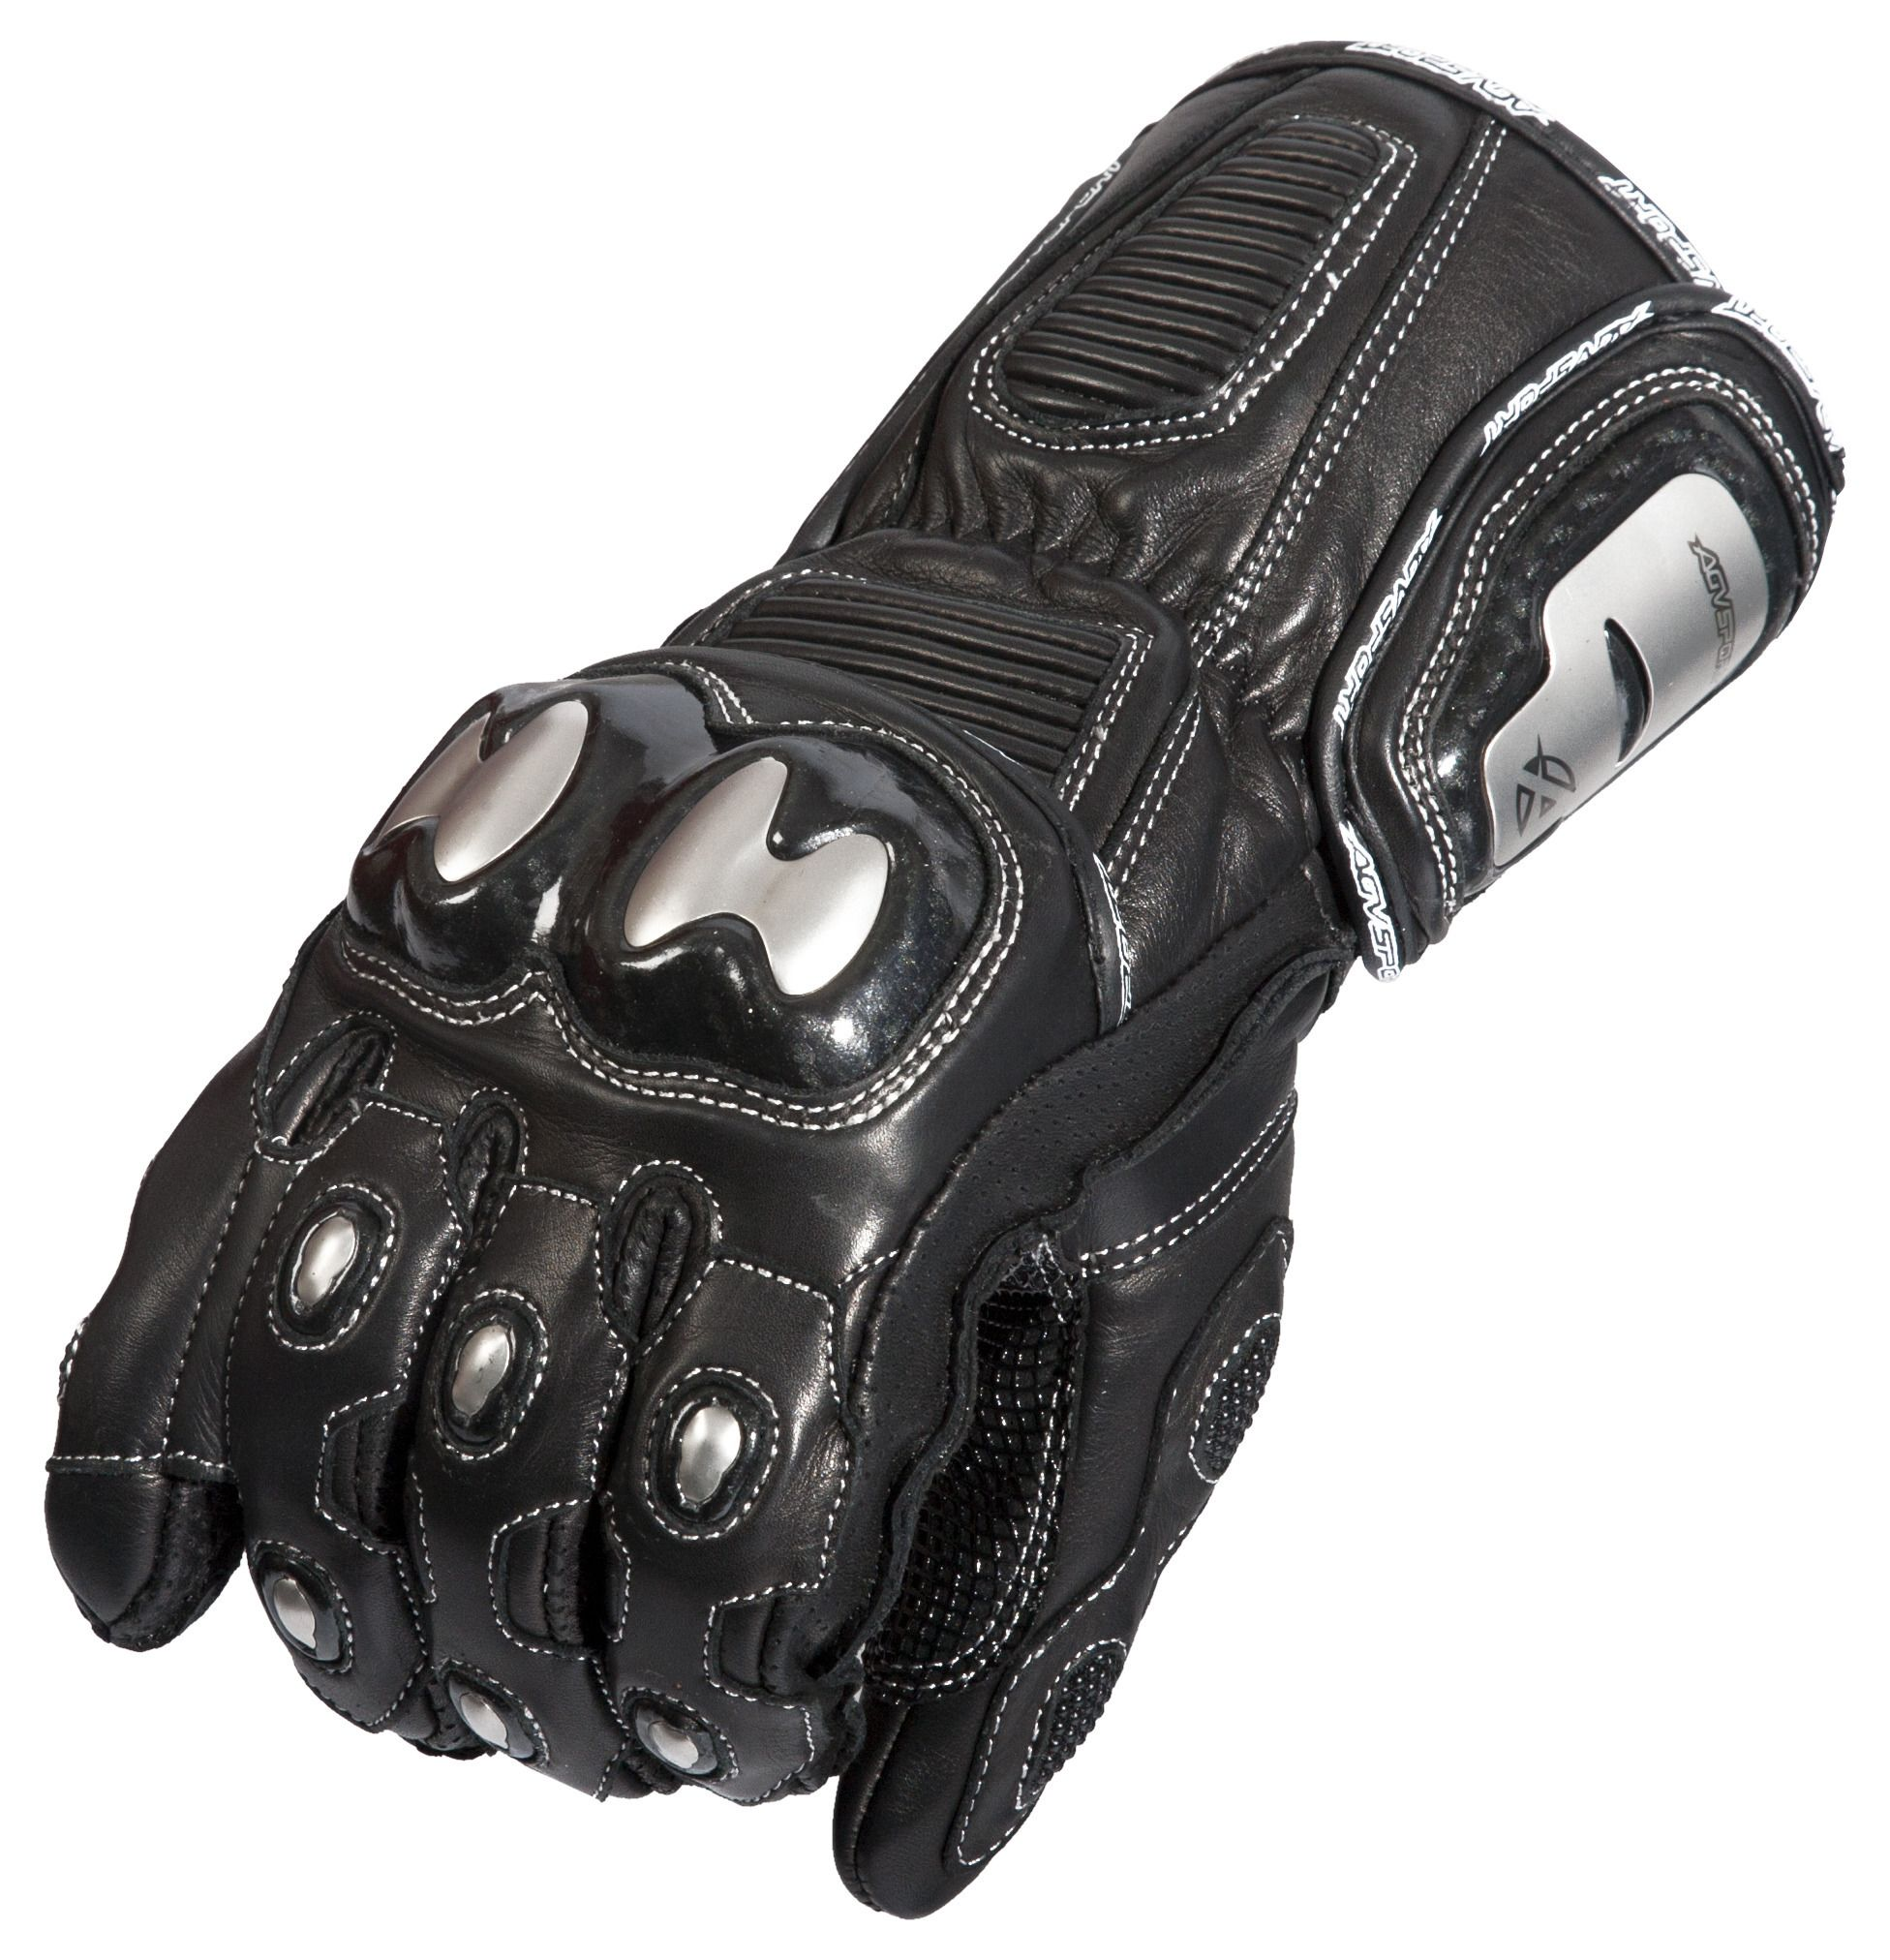 Motorcycle gloves double cuff - Motorcycle Gloves Double Cuff 15